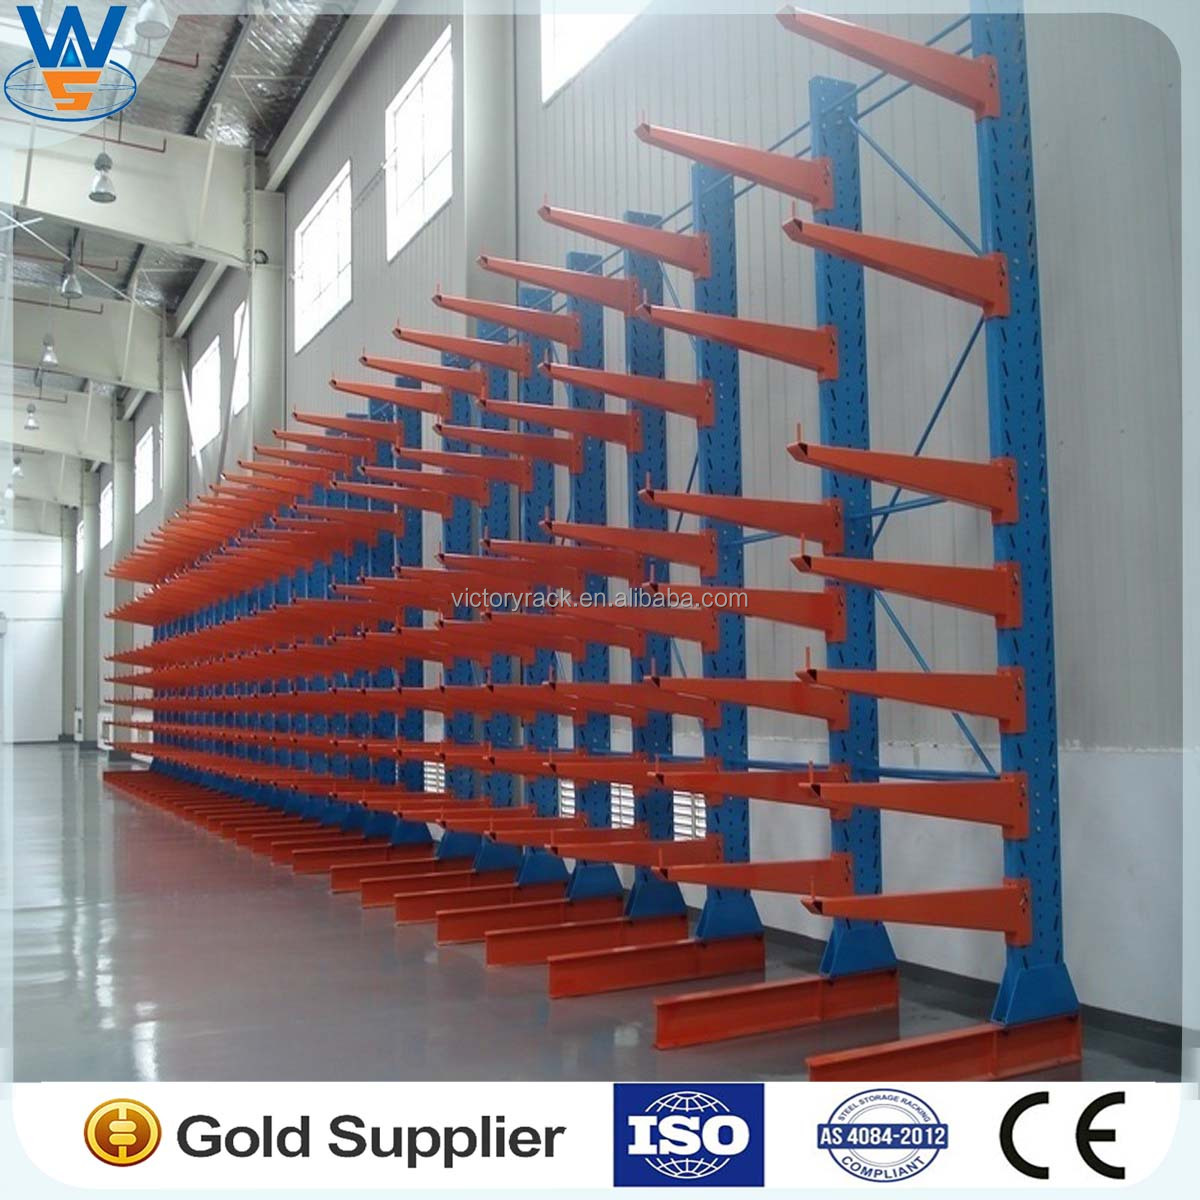 Used Car Warehouse: Cantilever Rack Widely Used In Warehouse For Storage Steel